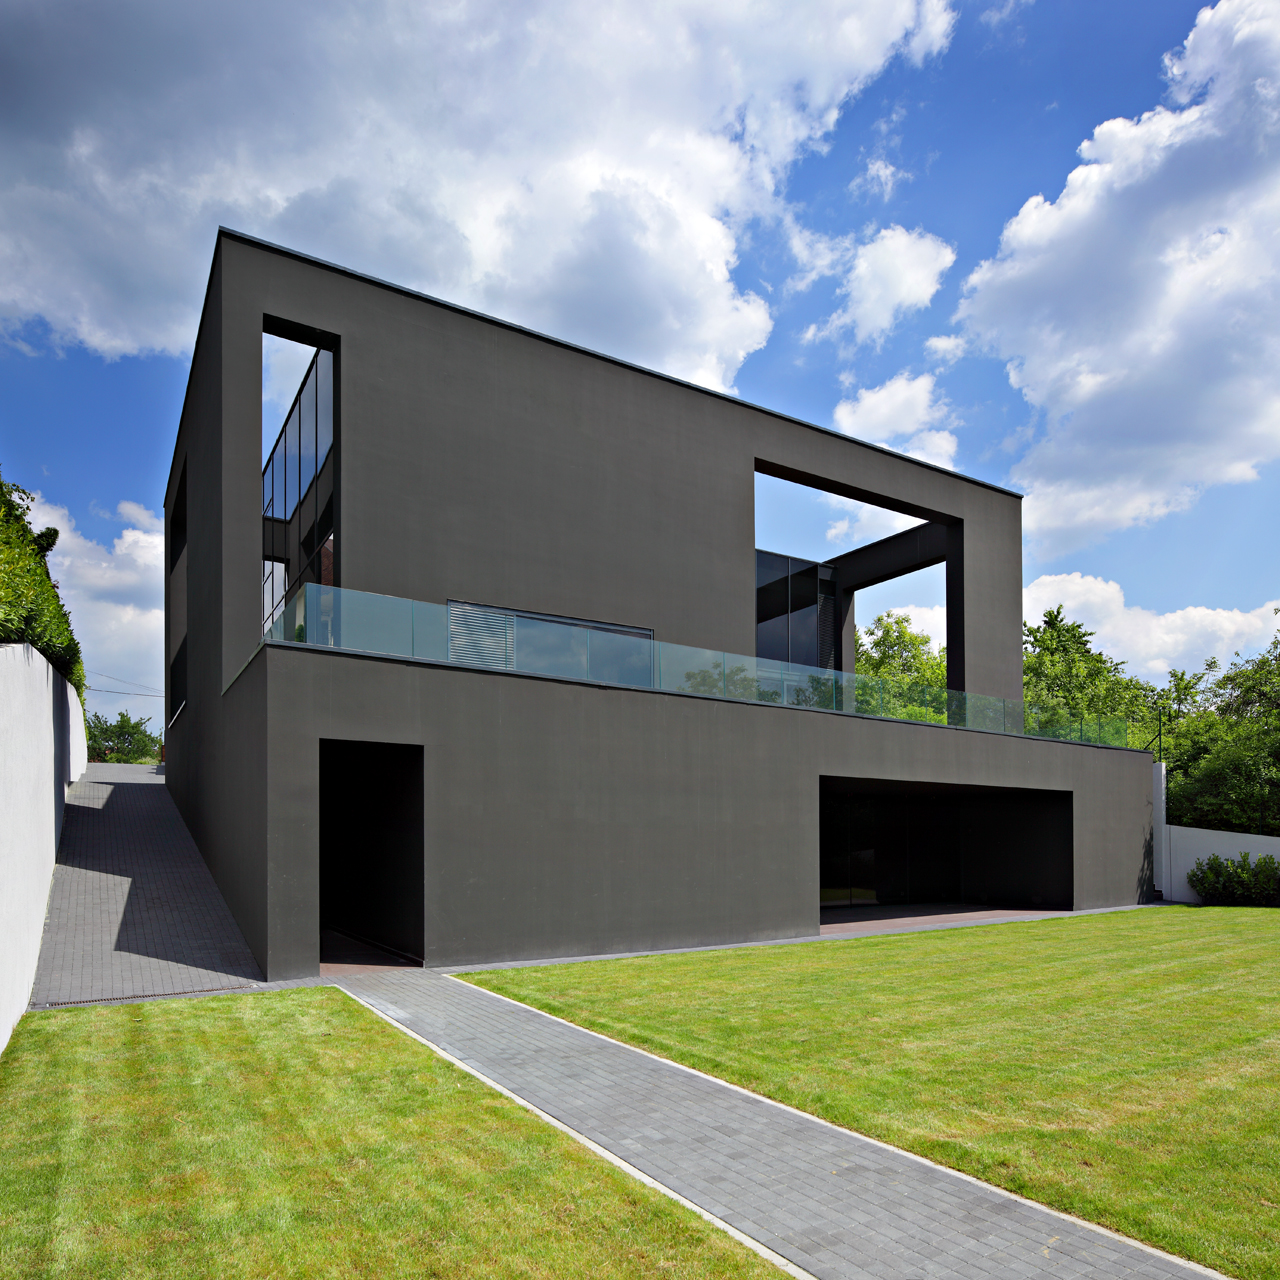 Black House / DVA ARHITEKTA, Courtesy of  dva arhitekta